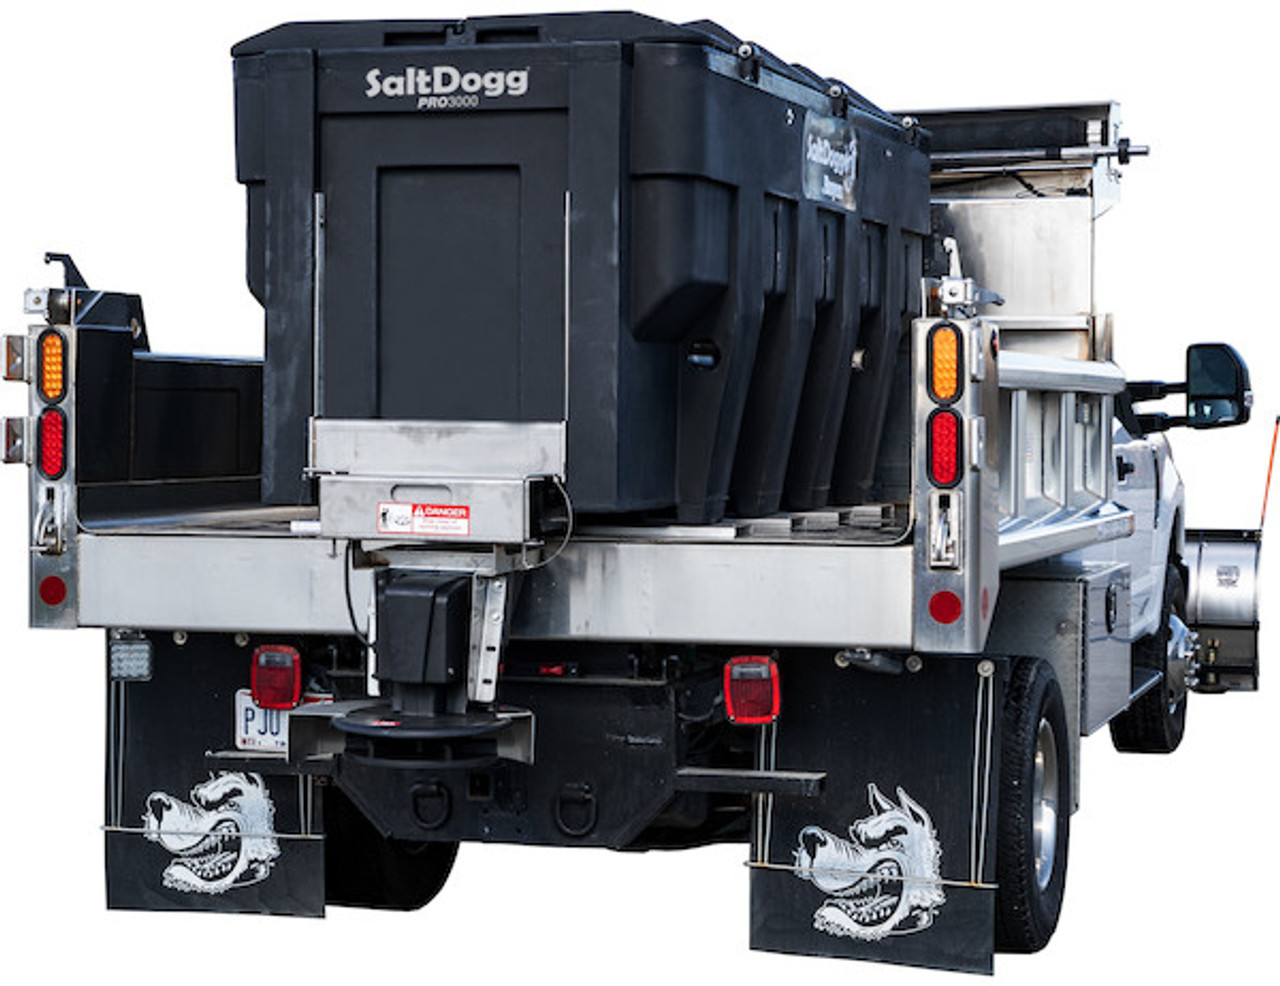 PRO3000 BUYERS SALTDOGG ELECTRIC POLY HOPPER SPREADER AUGER